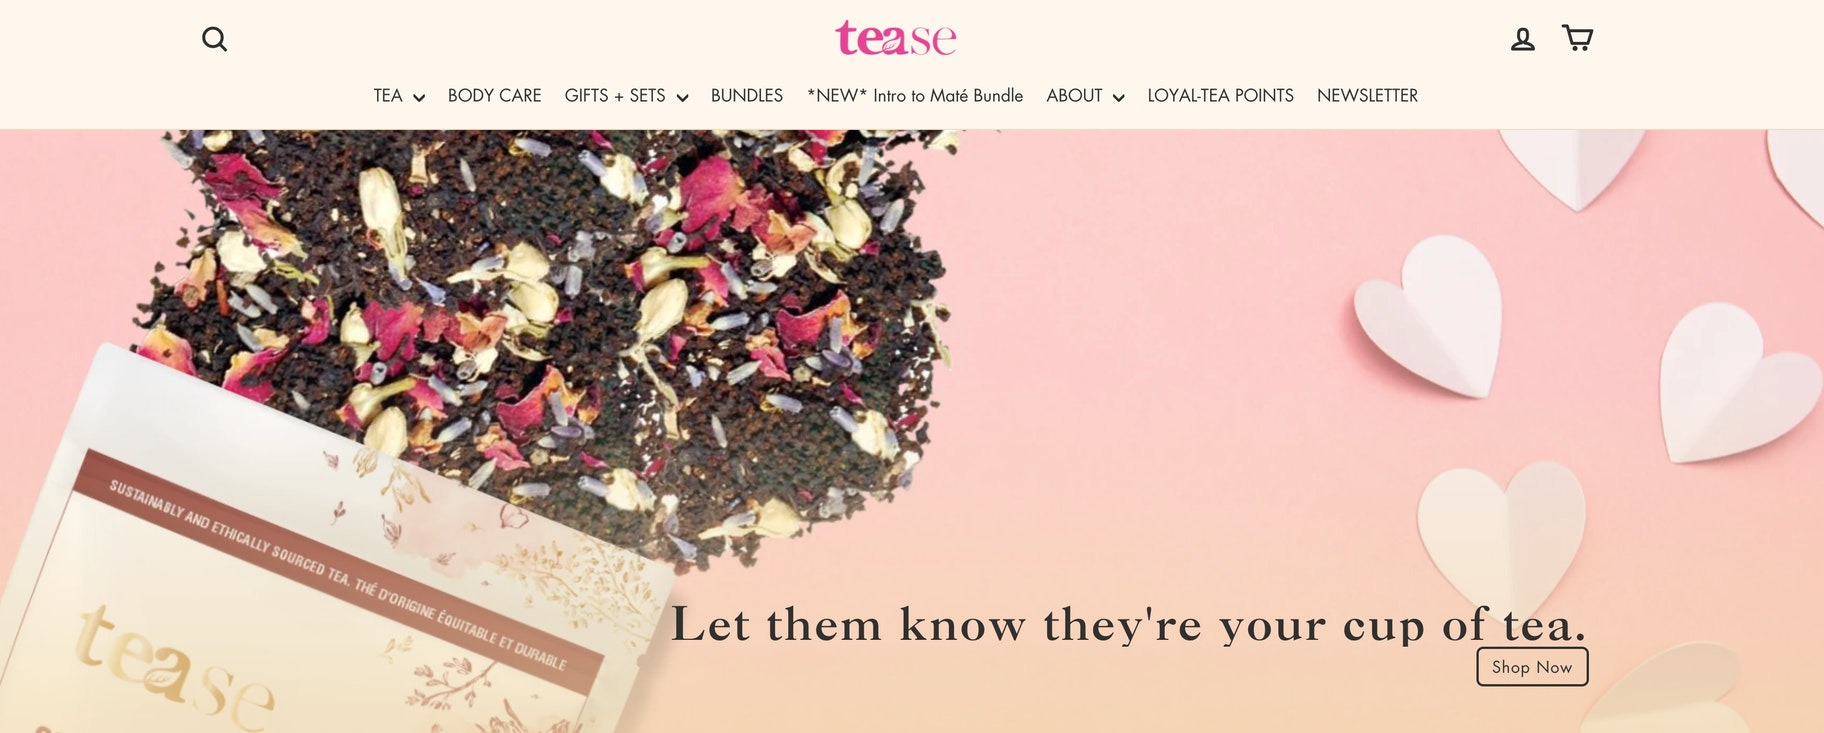 teaste tea website